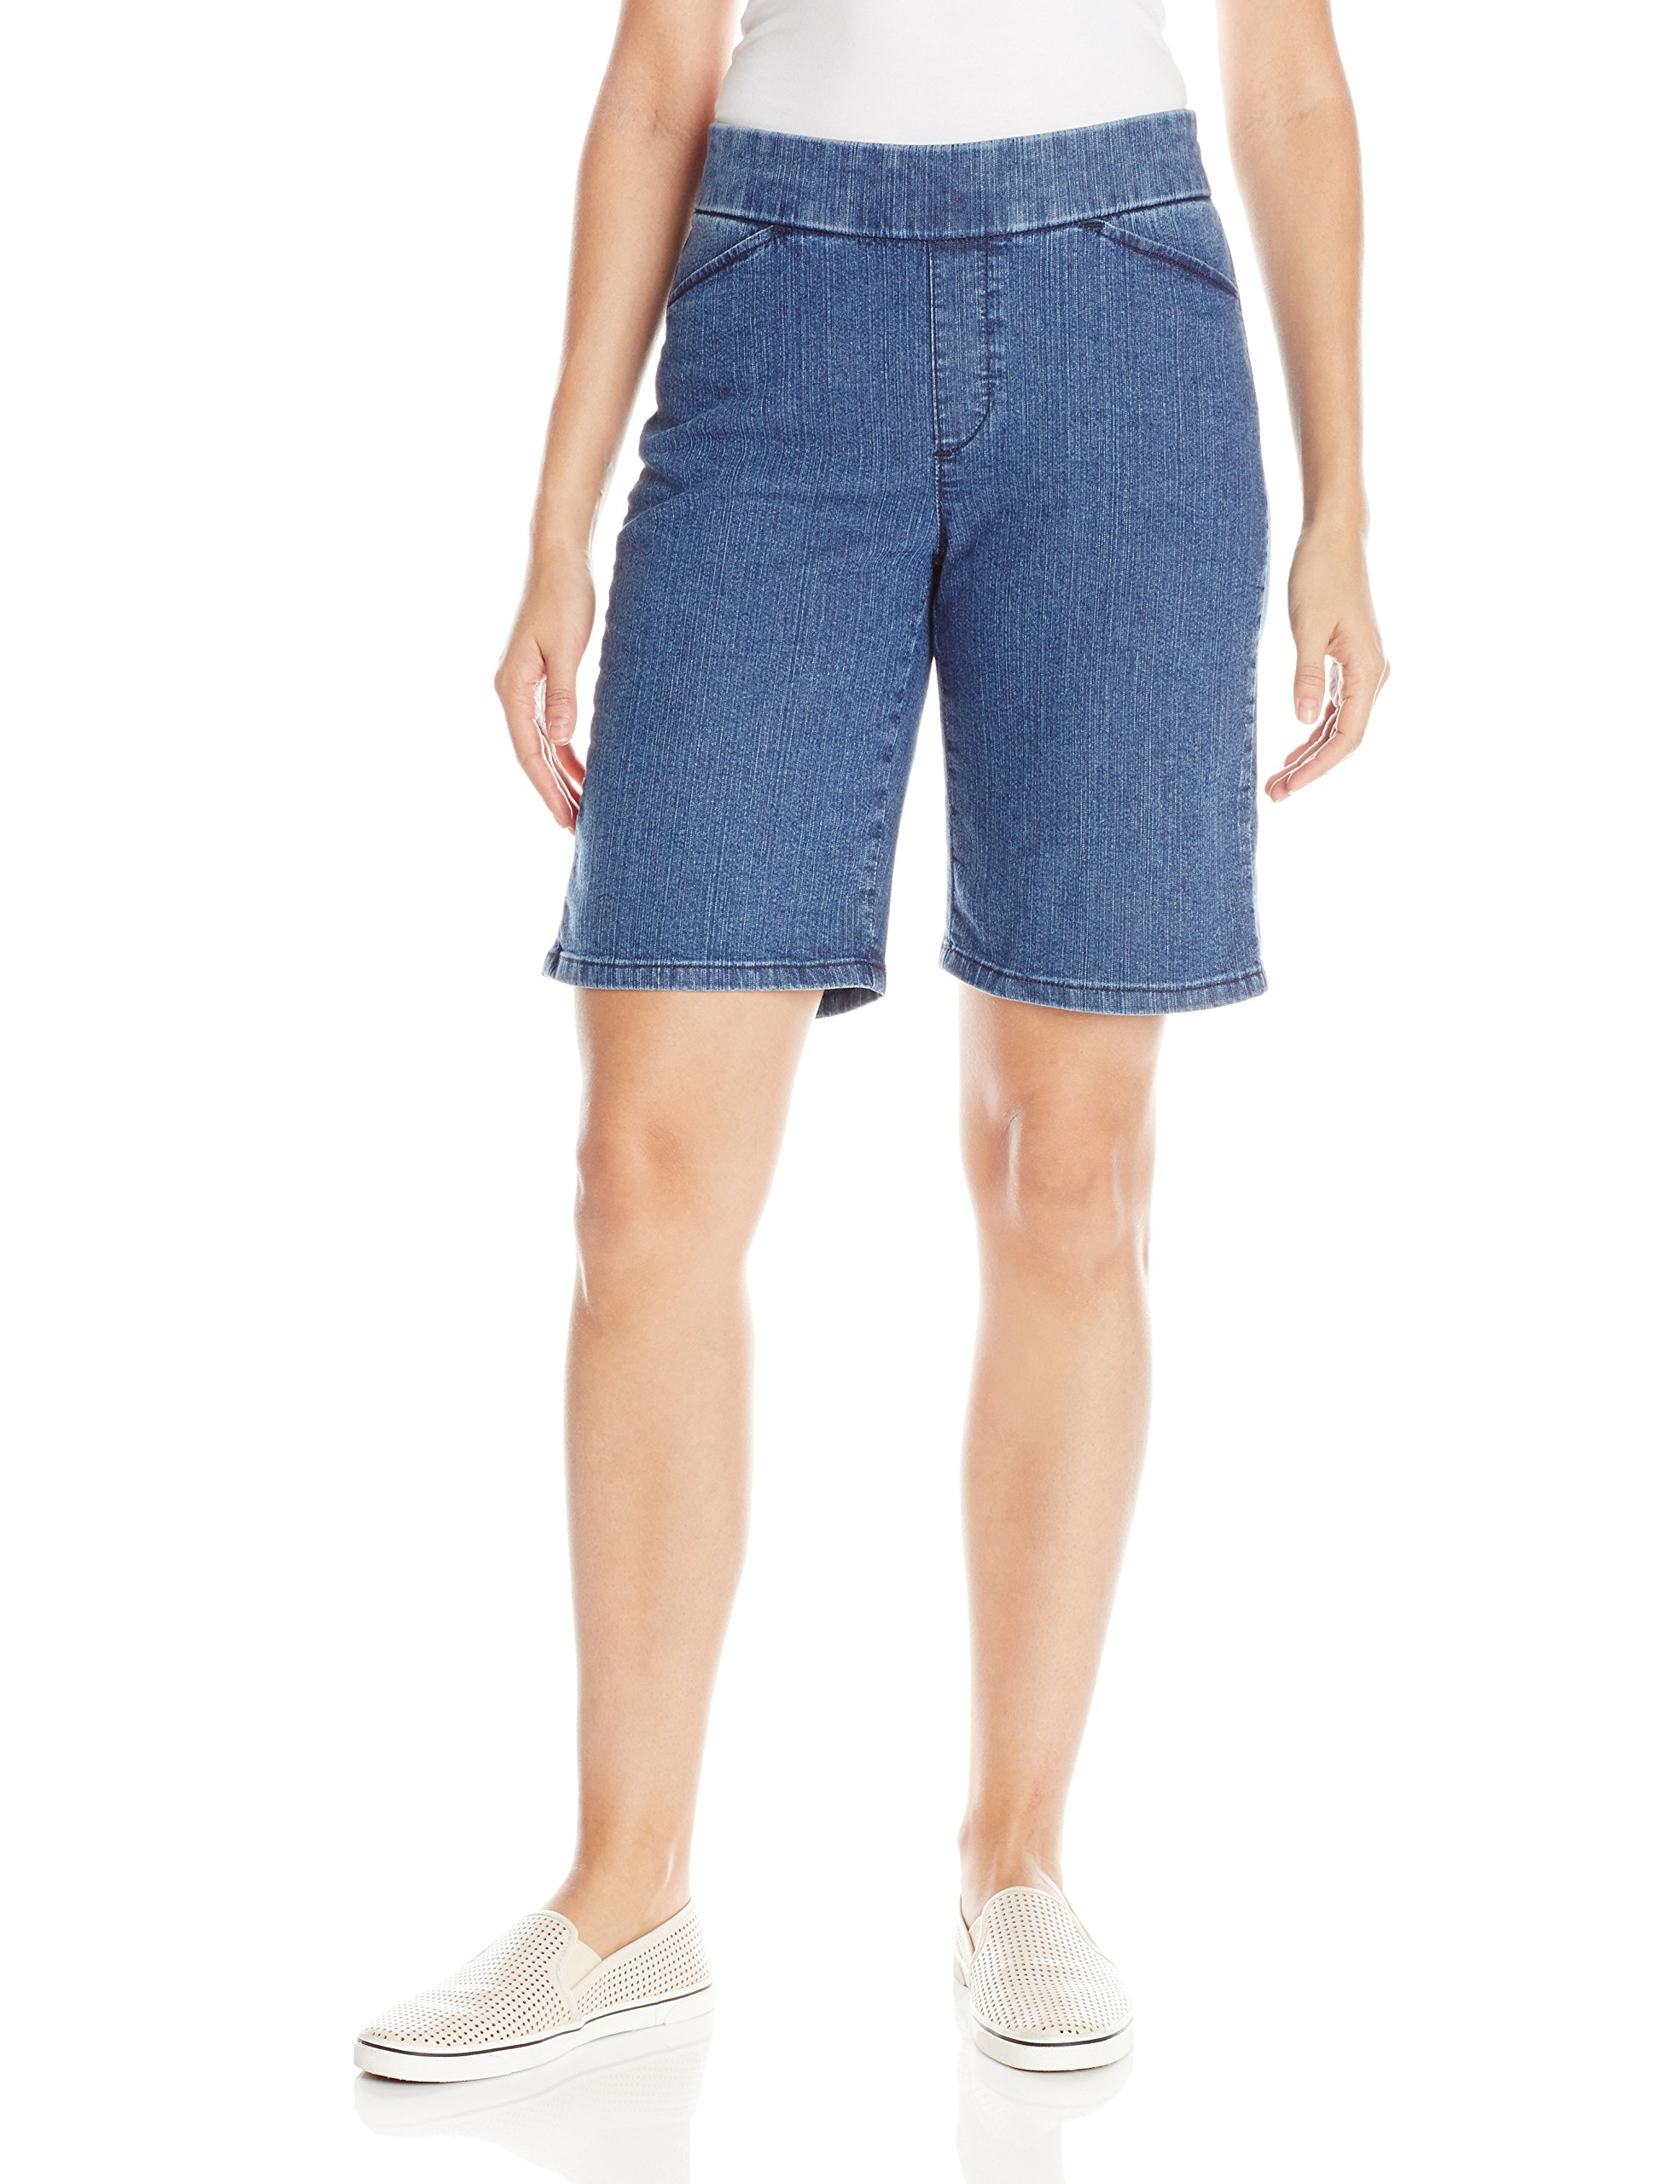 Chic Classic Collection Women's Relaxed Fit Flat Front Elastic Waist Bermuda Short, Mid Shade, 16